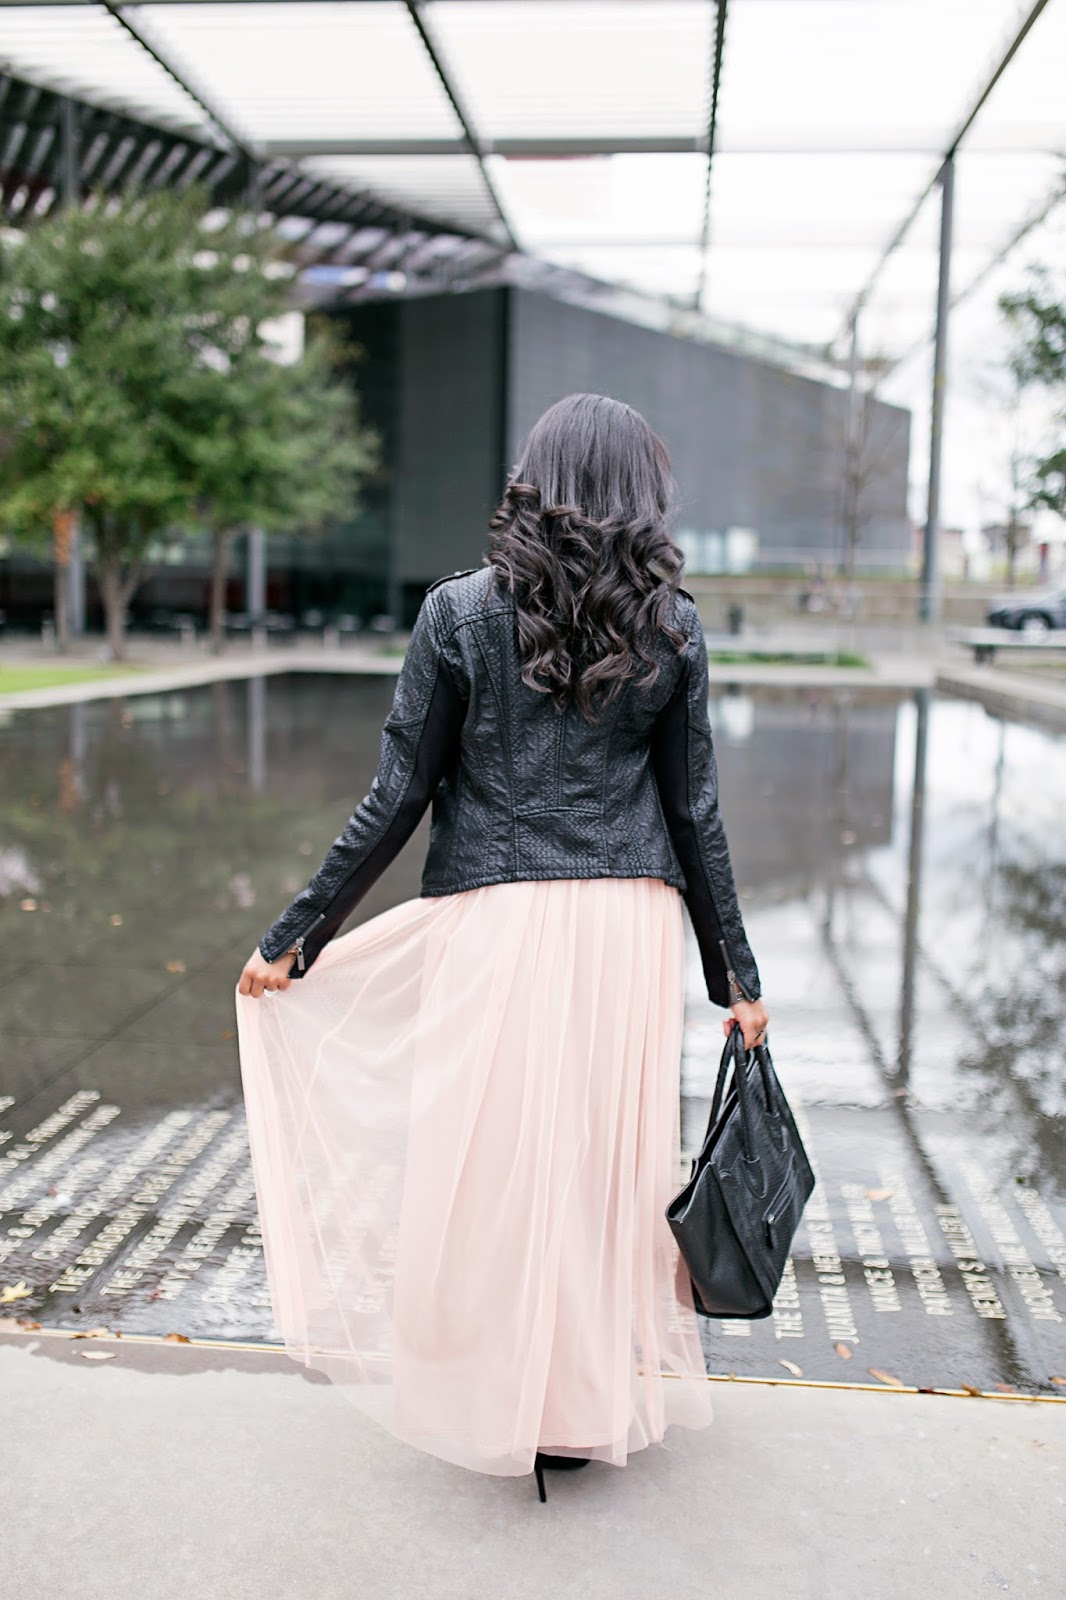 how to wear leather jacket- how to wear tulle skirt- how to make tulle skirt wearable- tulle skirt outfit- tulle maxi skirt- blanc noir leather jacket- budget friendly fashion- look for less celine bag- dallas fashion blogger- black girl blogger- black fashion blogger- dallas blogger- date night outfit- what to wear night out